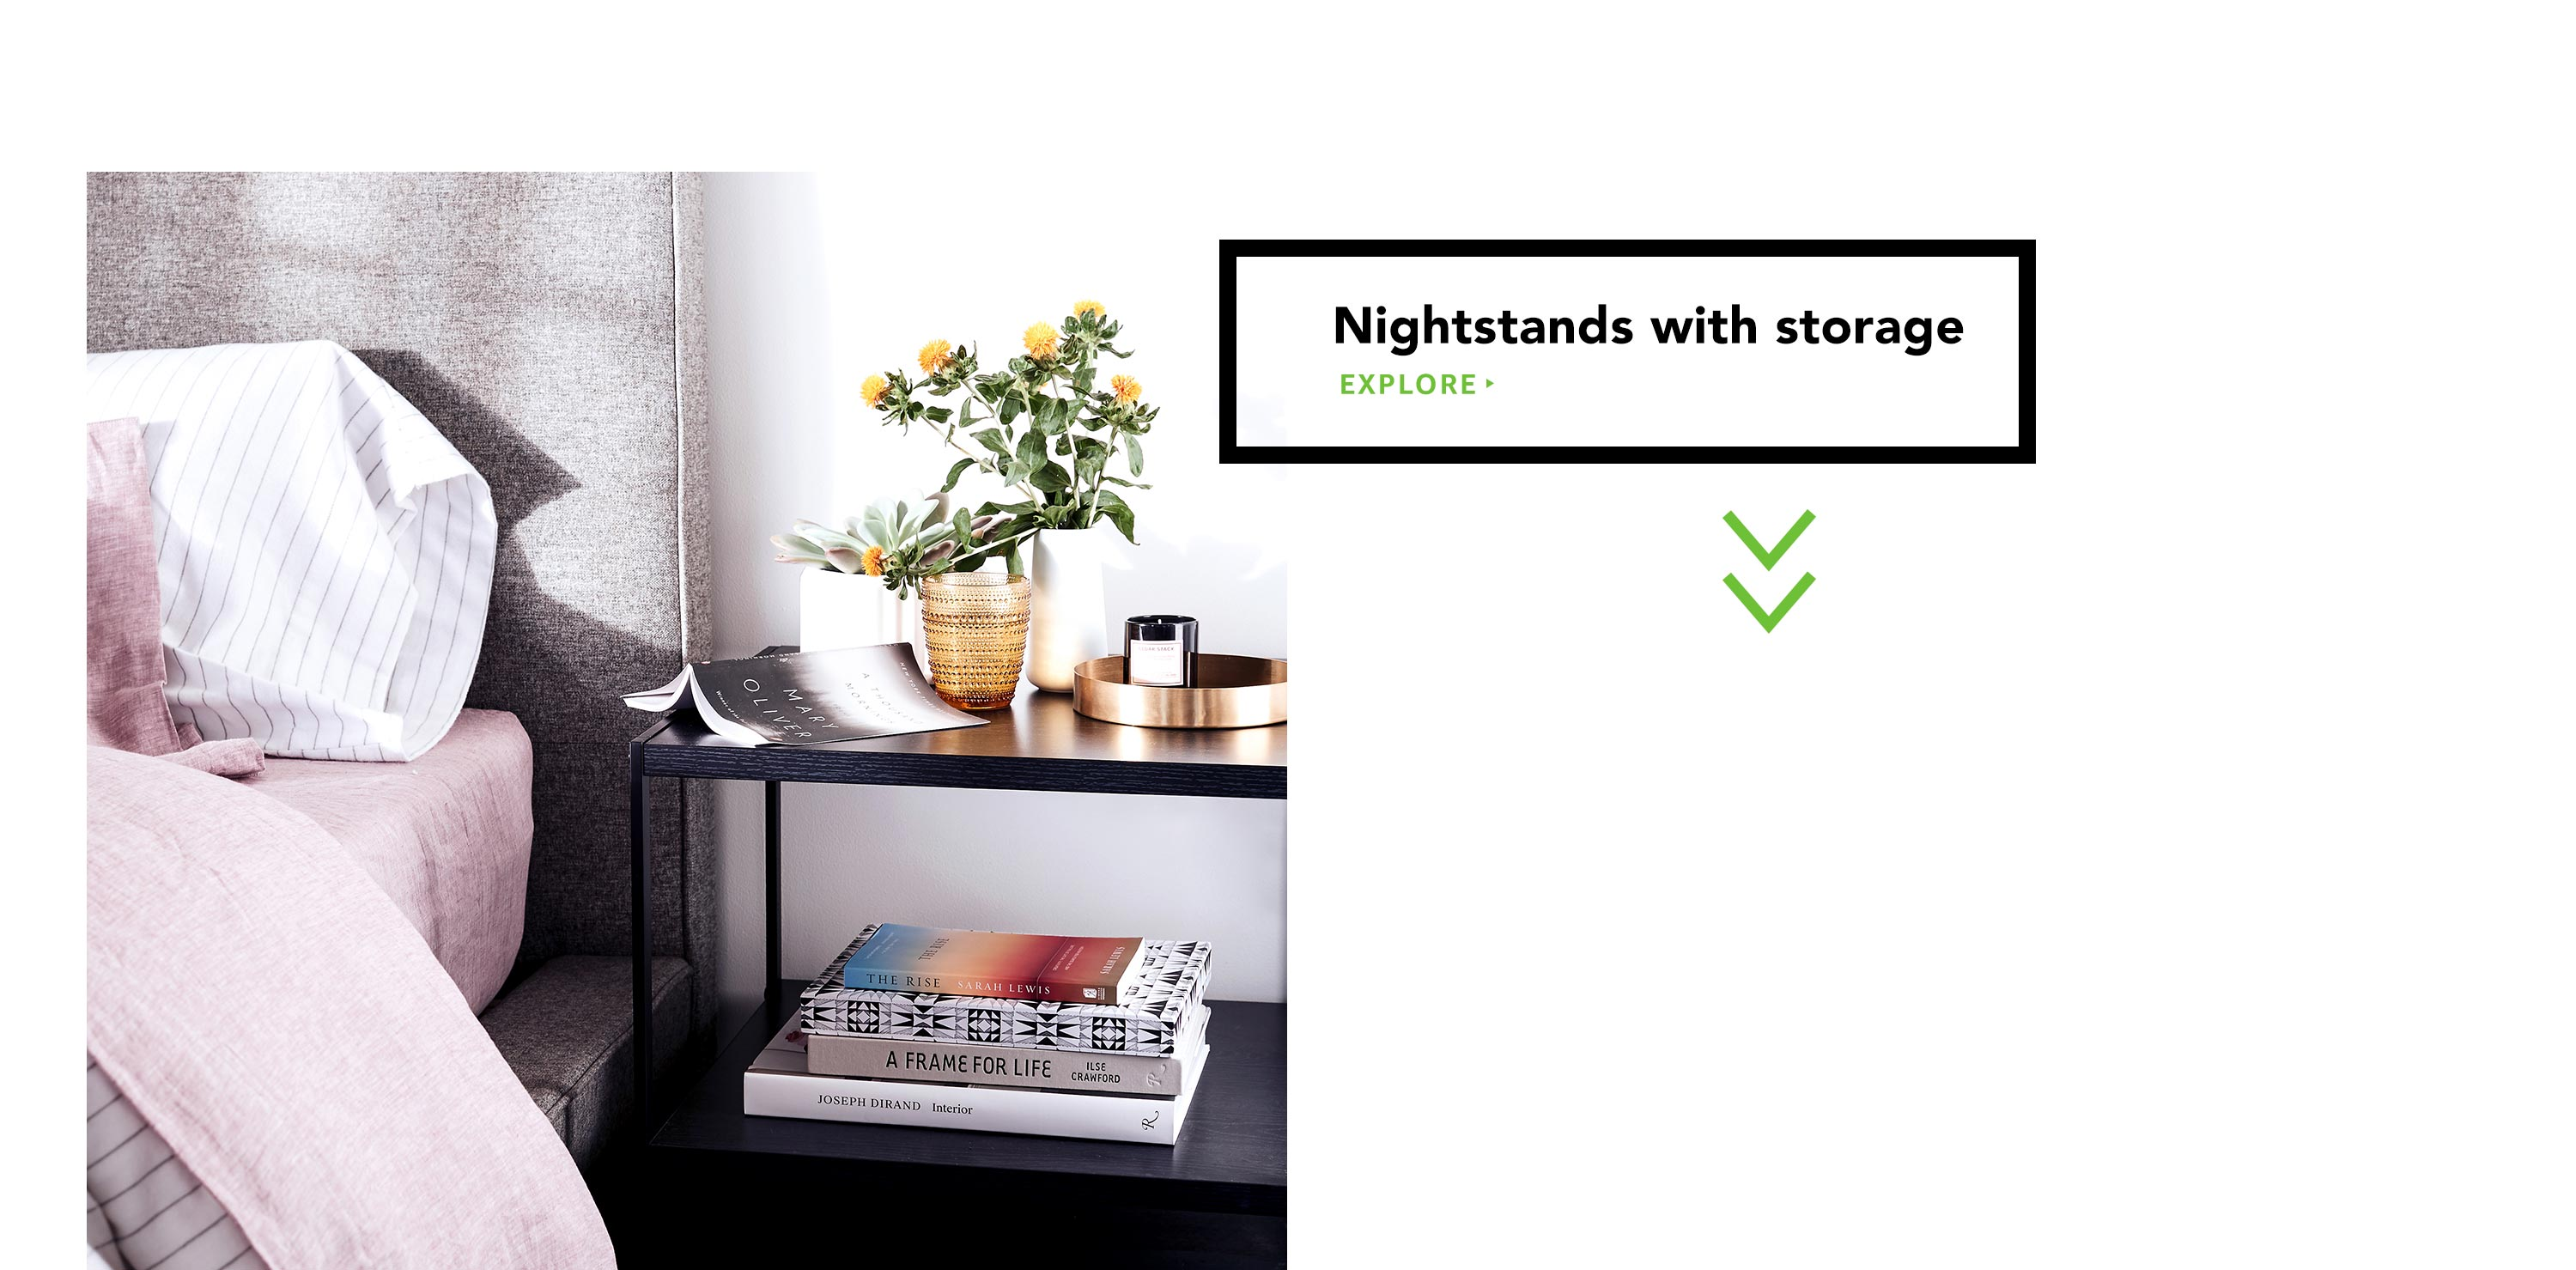 Nightstands with storage